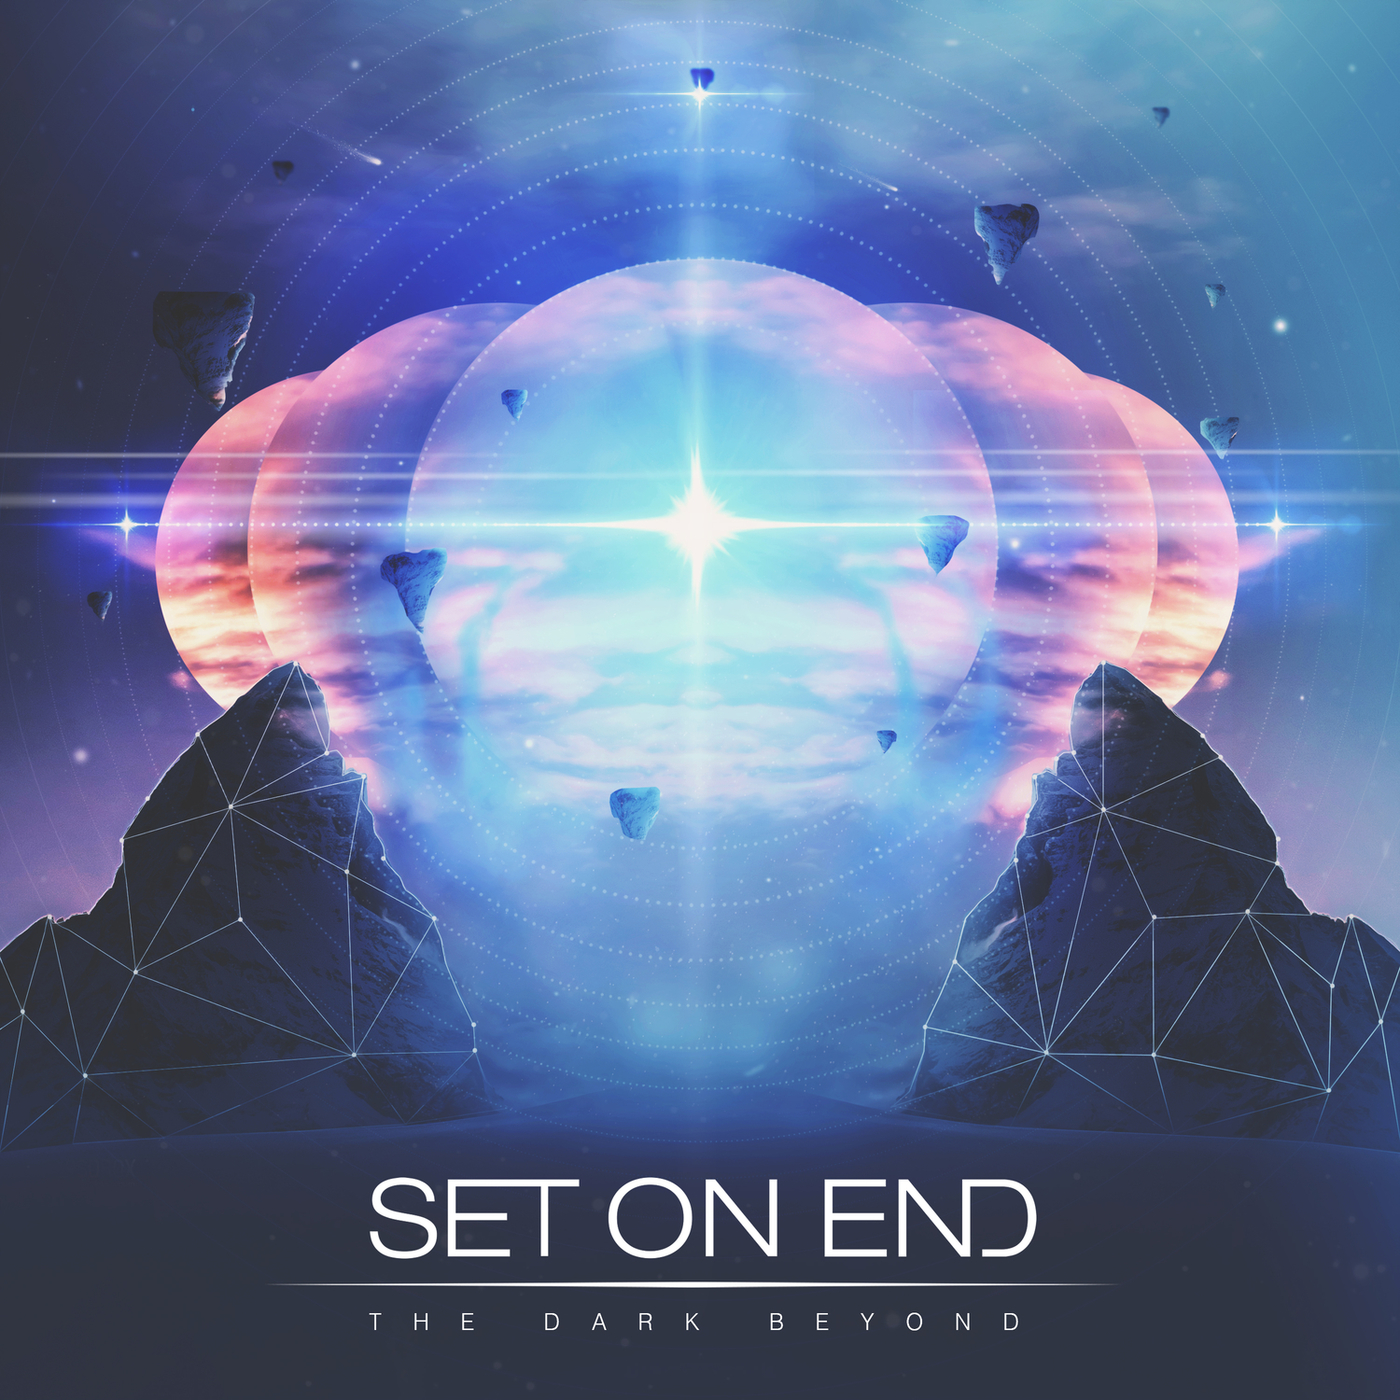 Set On End - The Dark Beyond (2016)